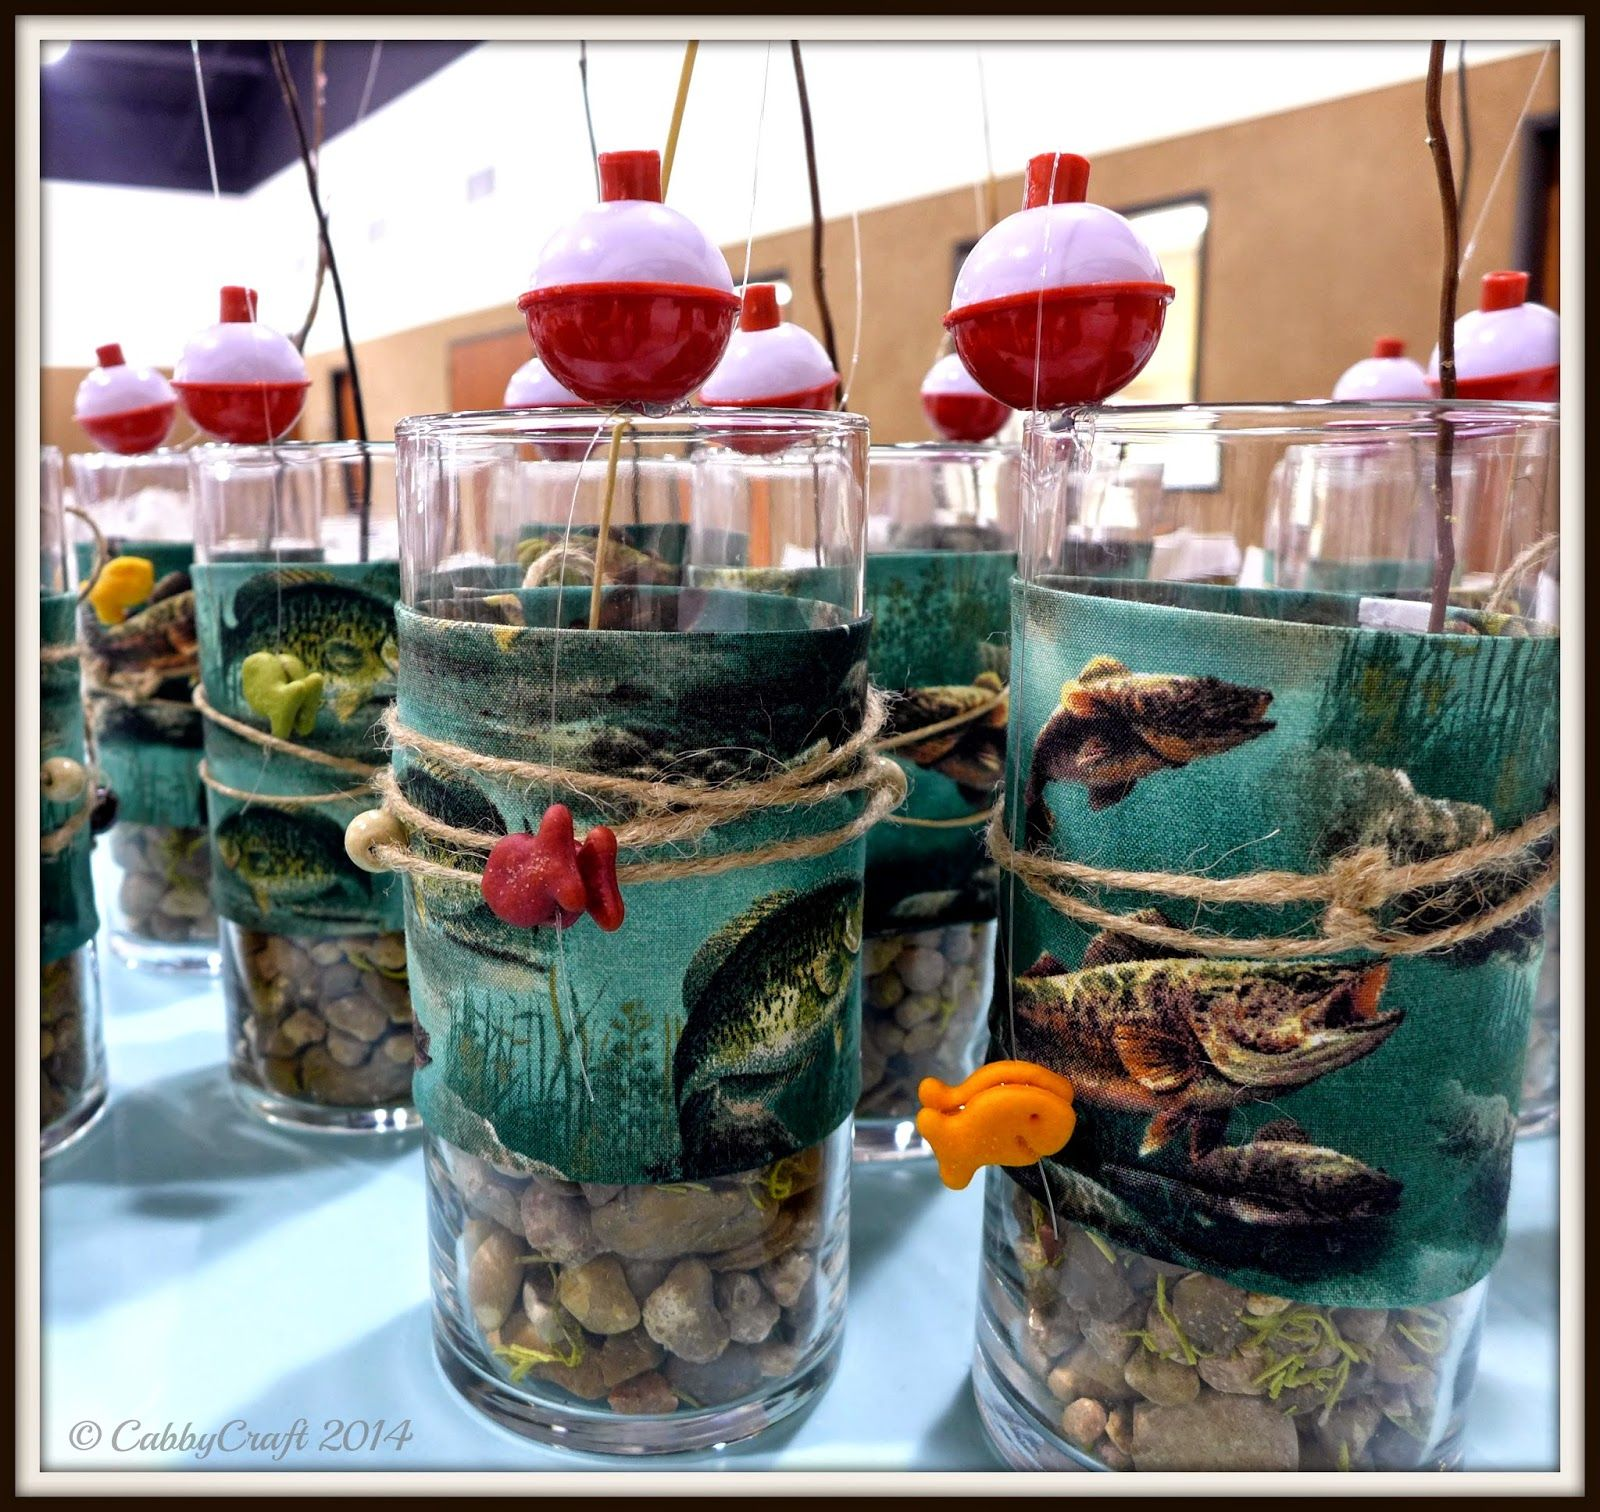 Table Decoration Ideas For Retirement Party find this pin and more on events decorations Retirement Parties Fgs Birthday Theme Gone Fishing These Were The Table Centerpiece Aren